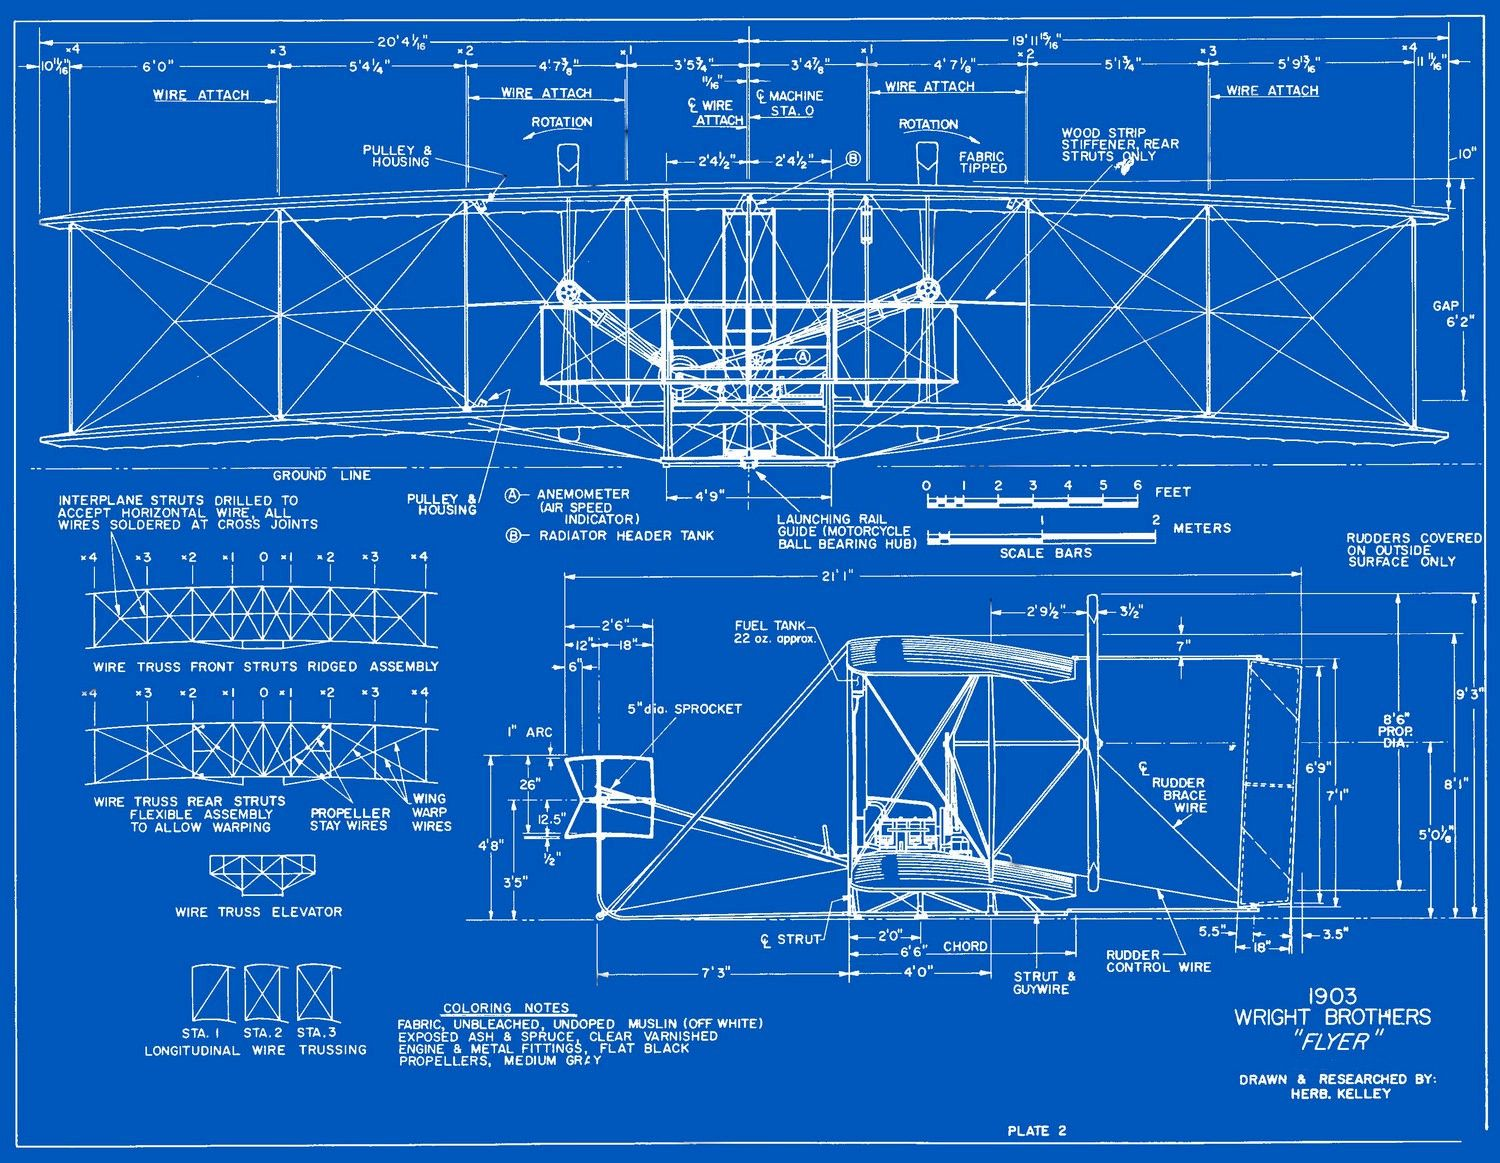 1903 Wright Flyer Blueprints - Free Download | Modellbau und Ideen